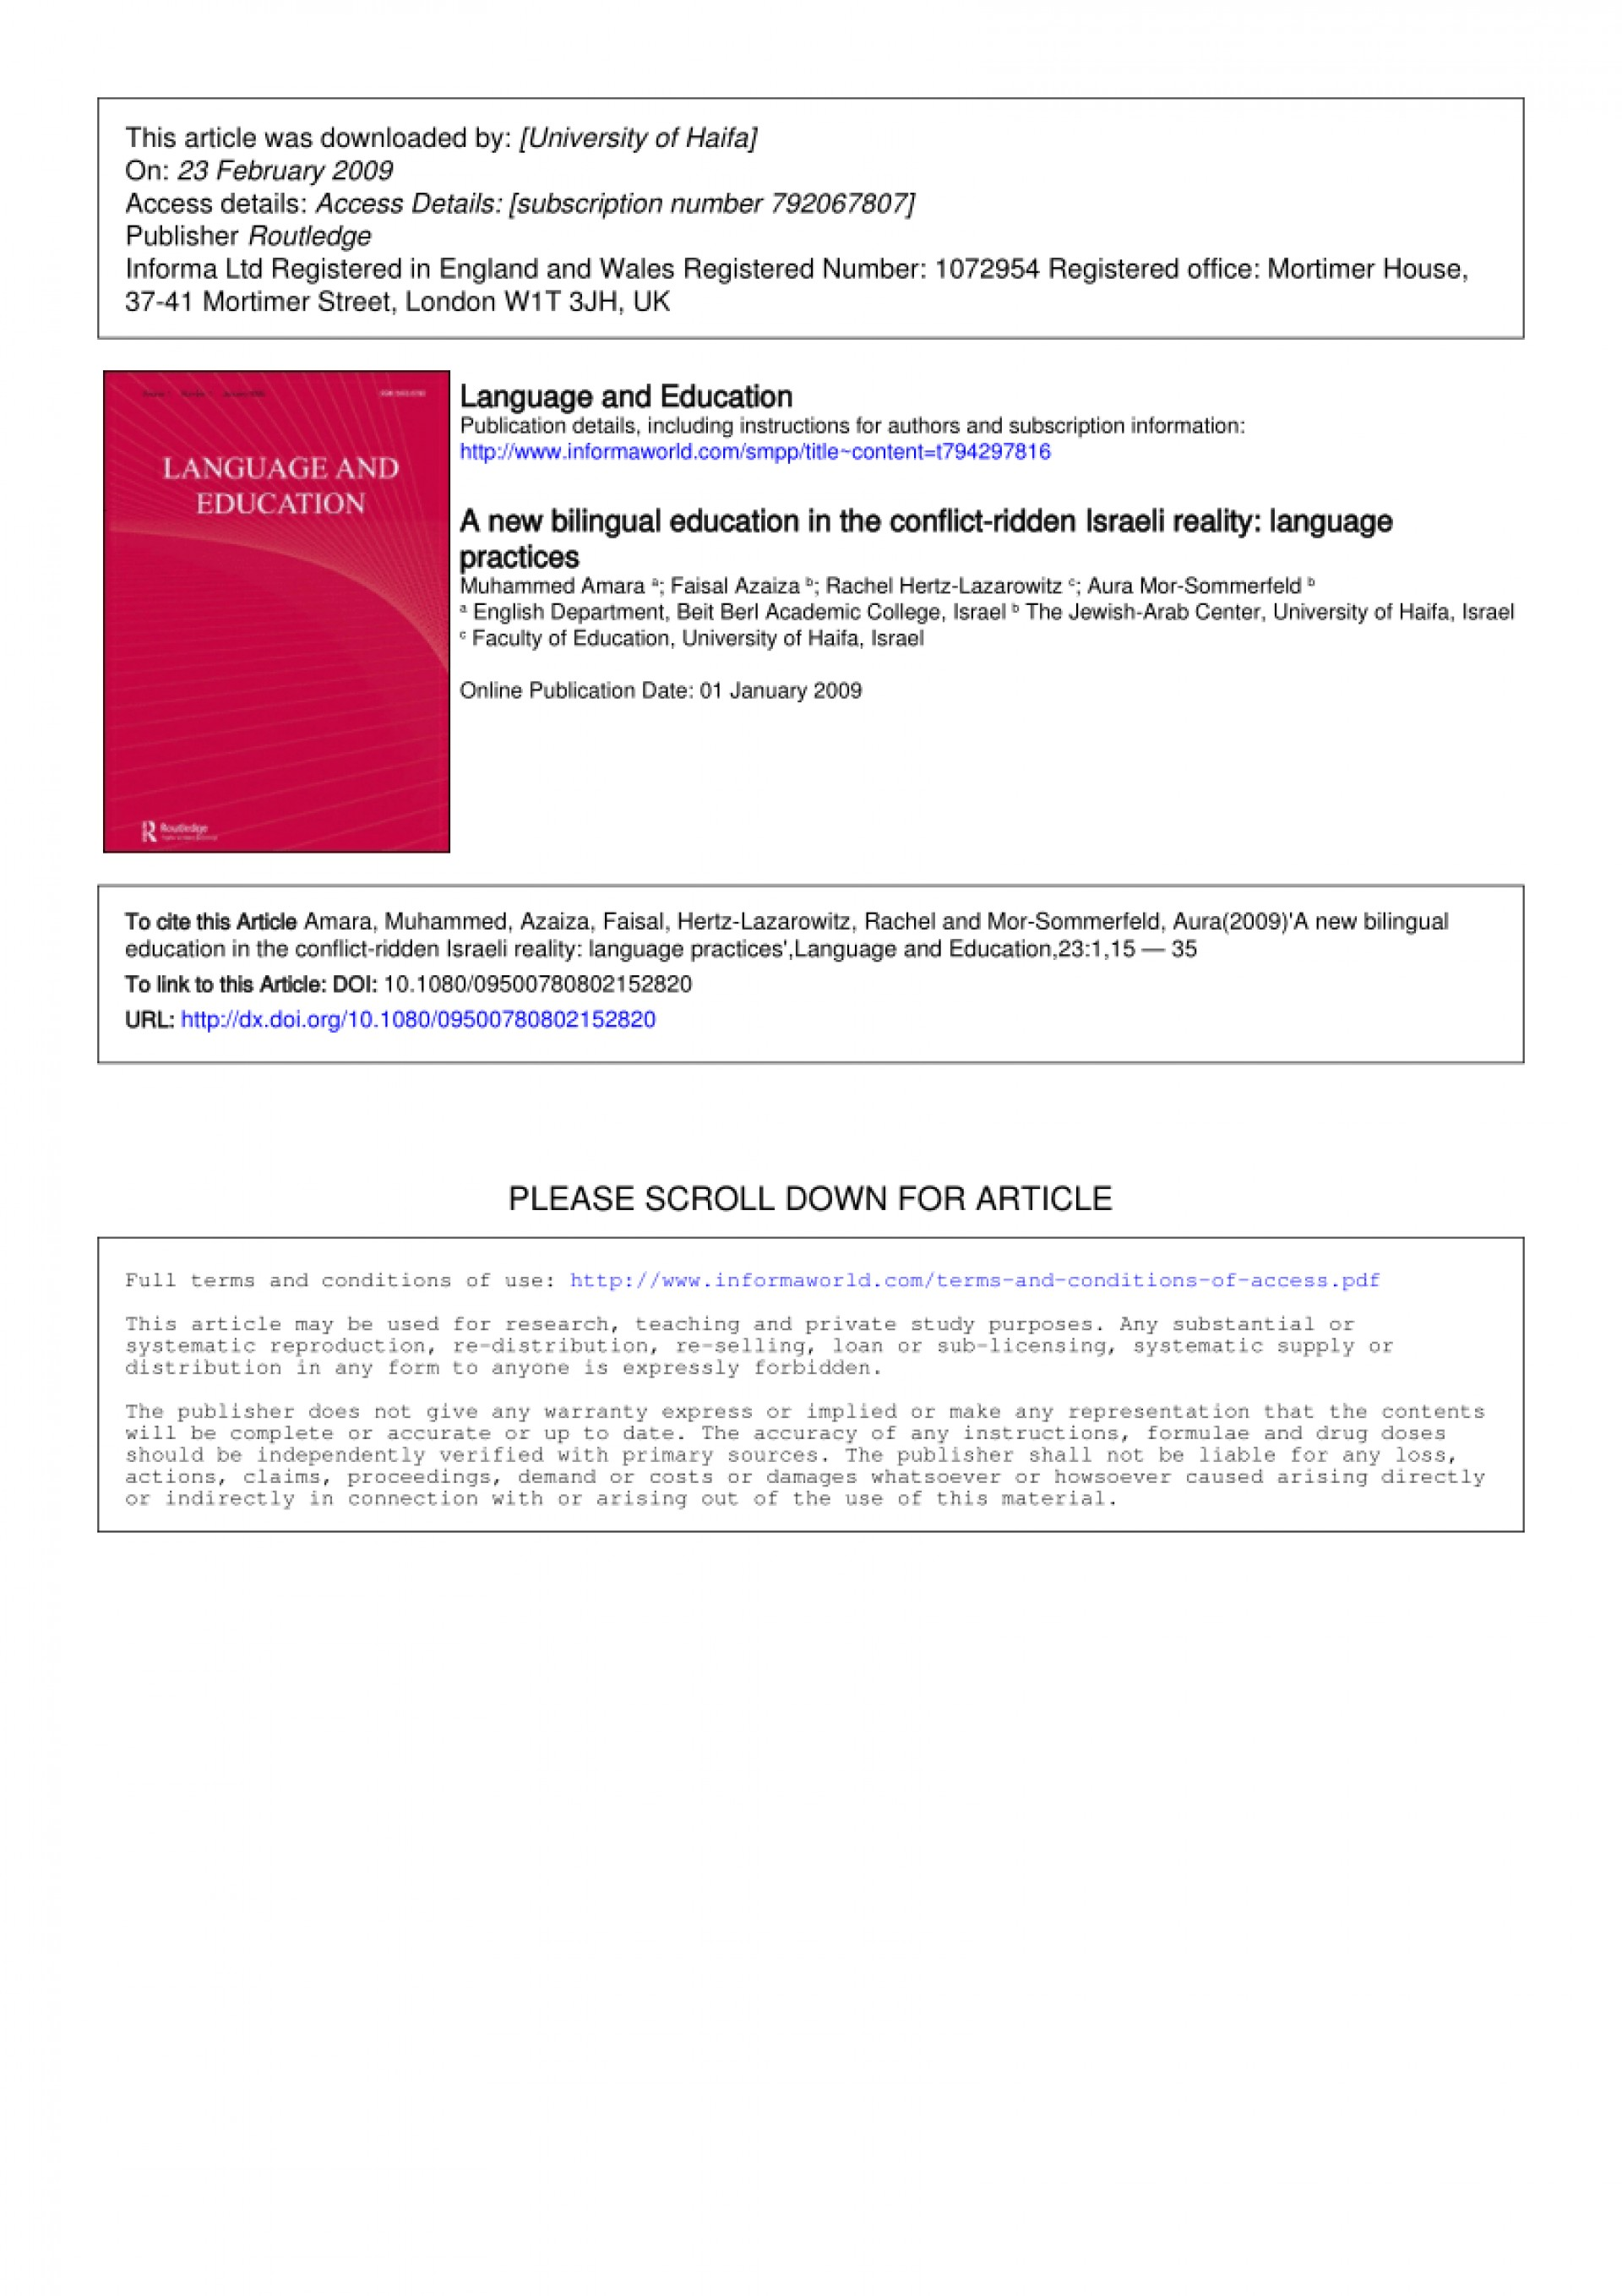 008 Largepreview Research Paper Bilingual Education Unusual Pdf 1920